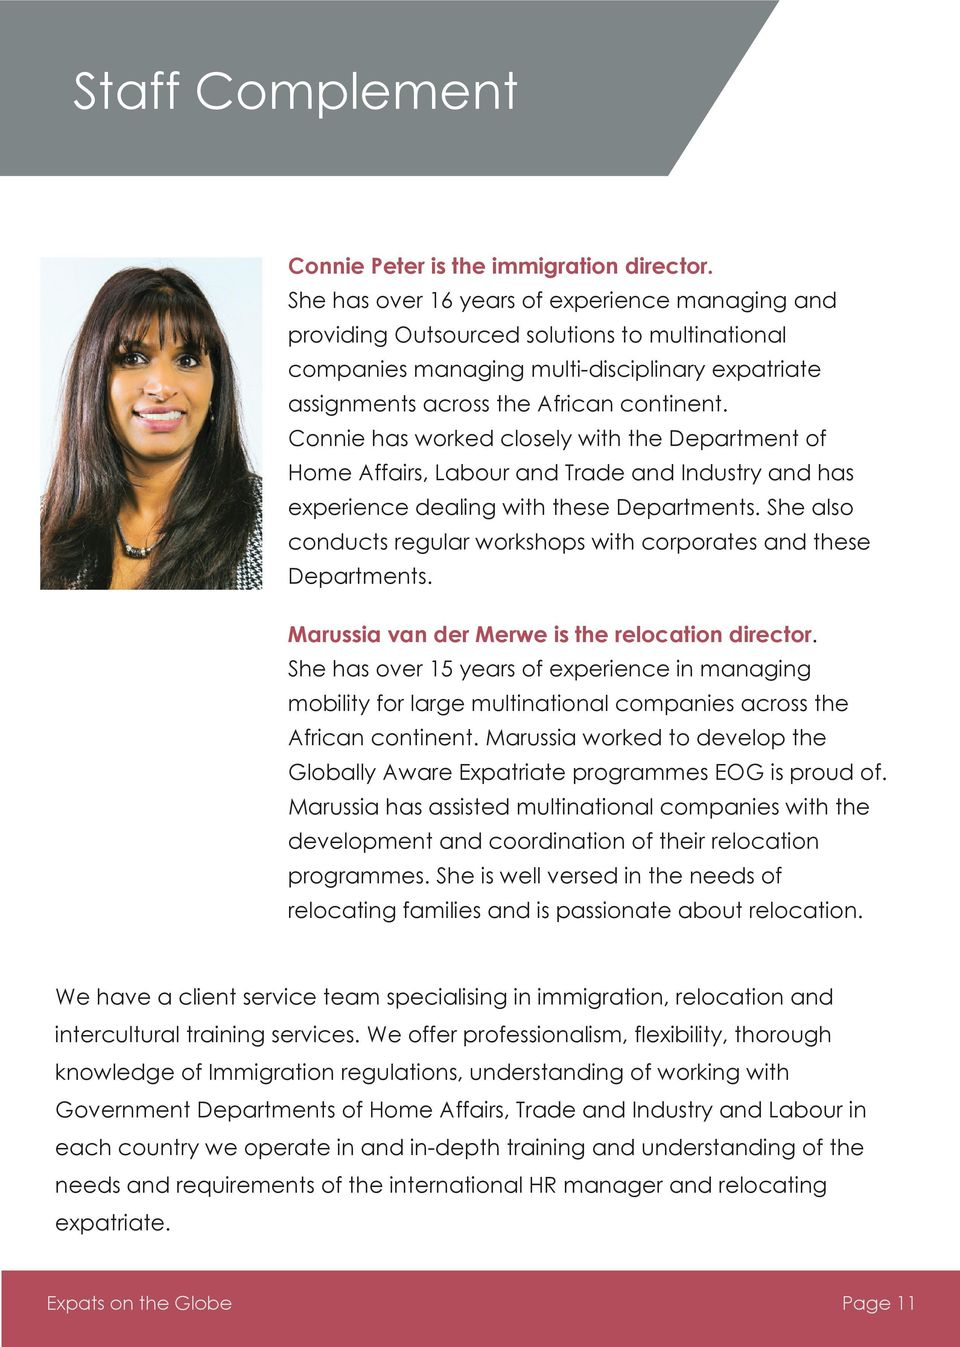 Connie has worked closely with the Department of Home Affairs, Labour and Trade and Industry and has experience dealing with these Departments.